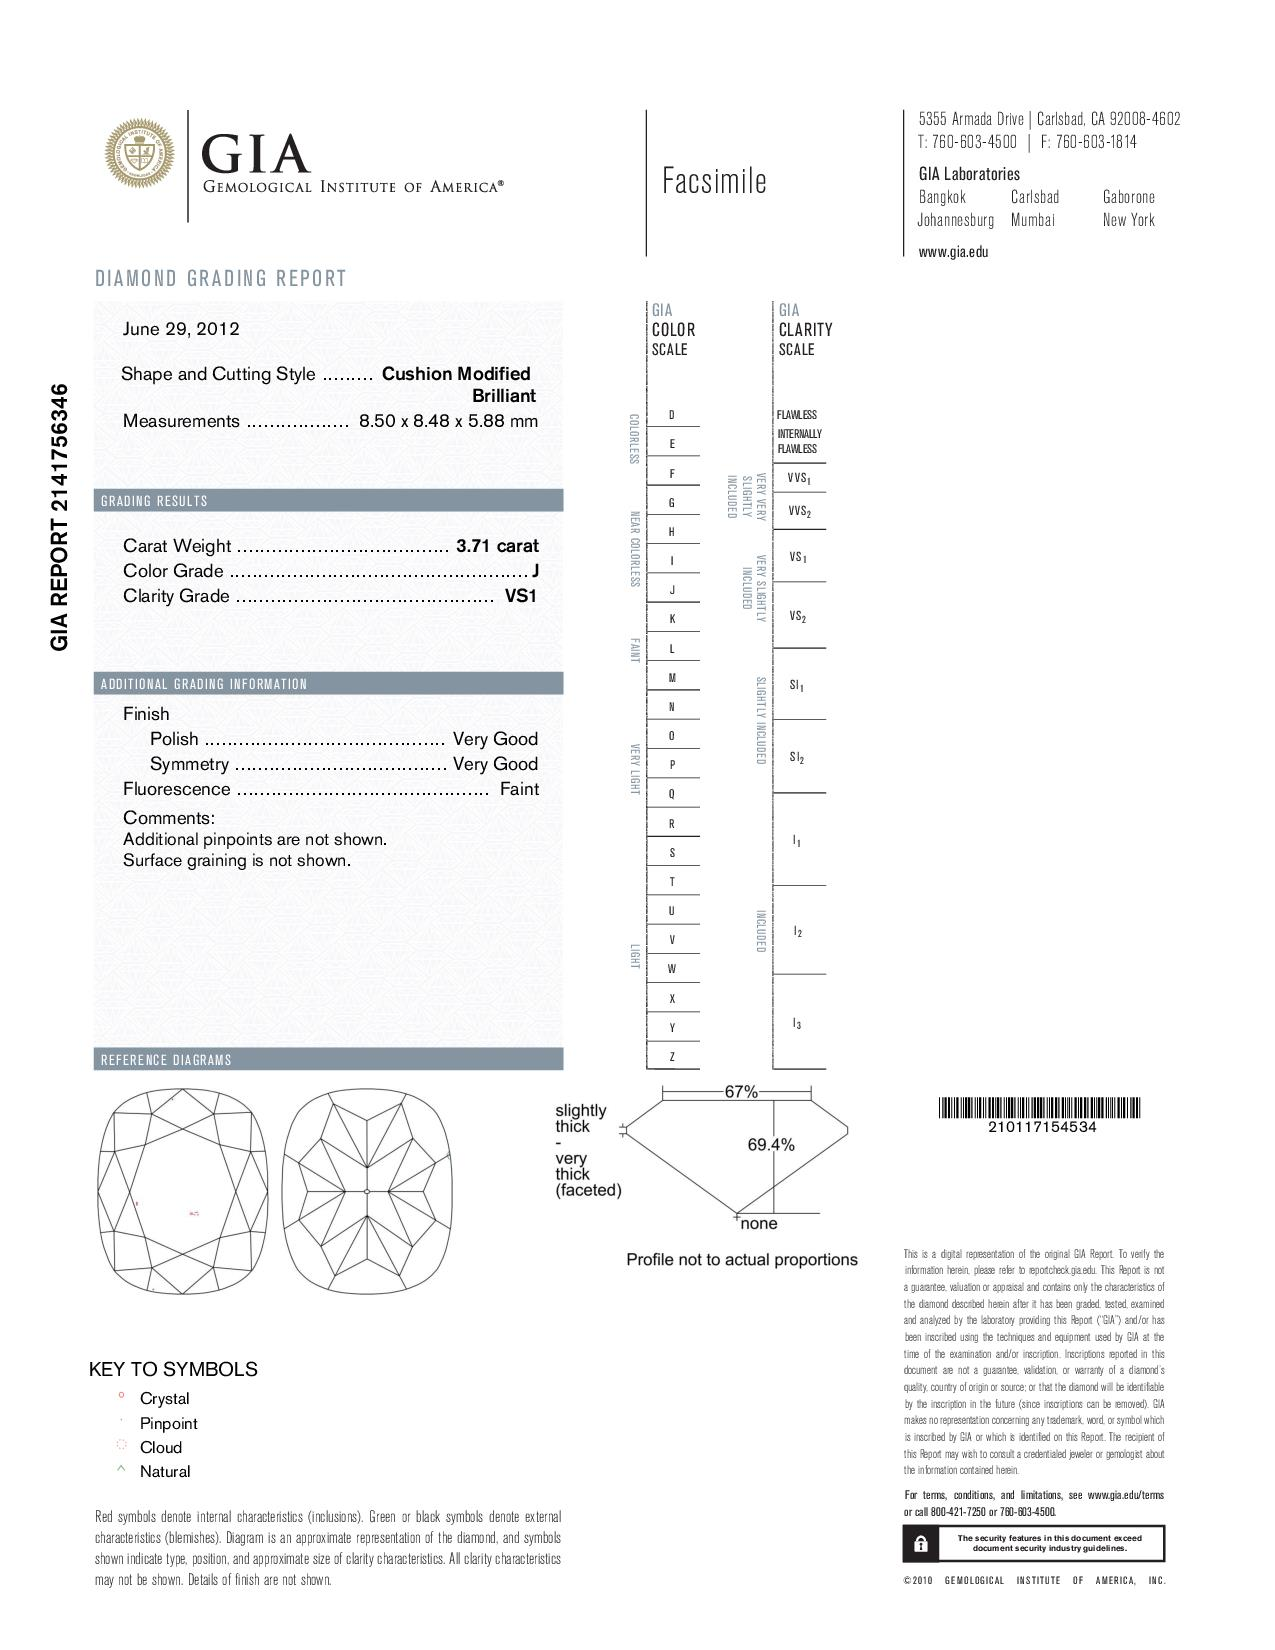 This is a 3.71 carat cushion shape, J color, VS1 clarity natural diamond accompanied by a GIA grading report.